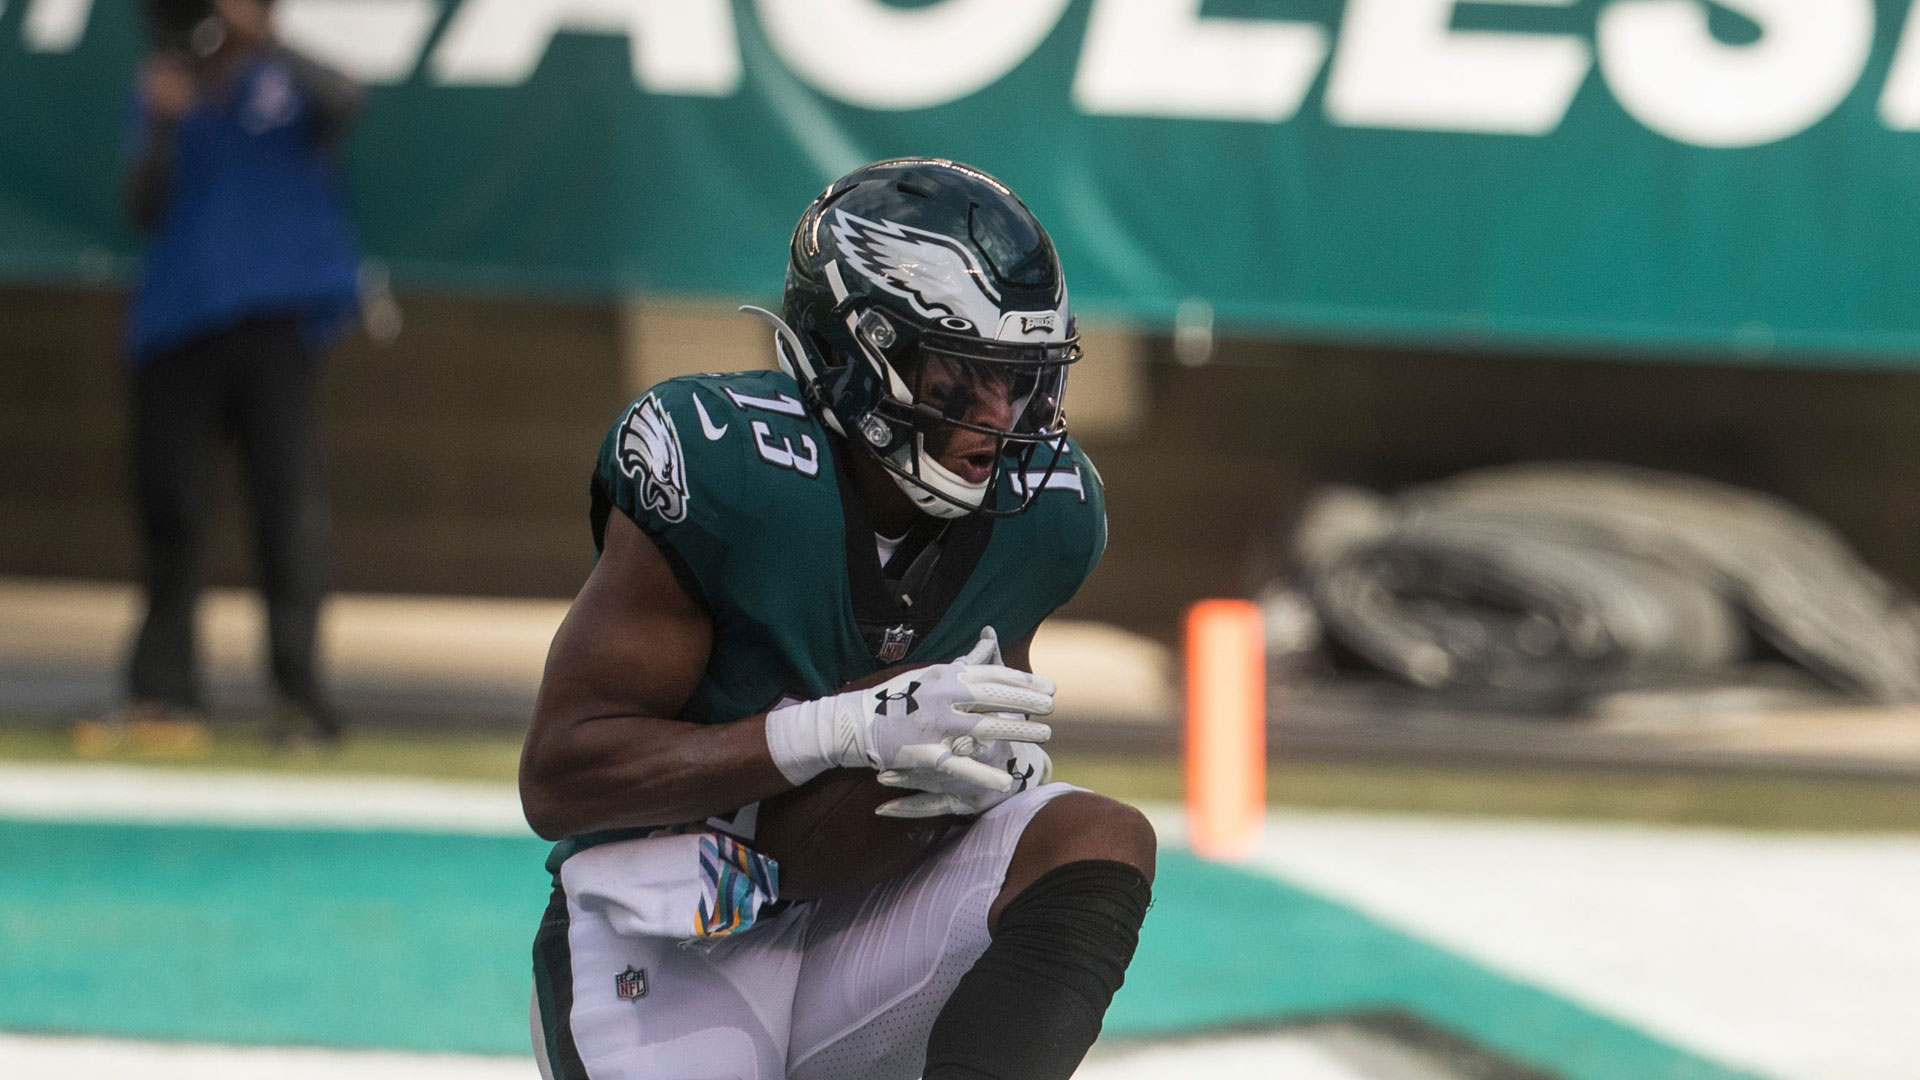 Eagles snap counts: Finding more playing time for Travis Fulgham